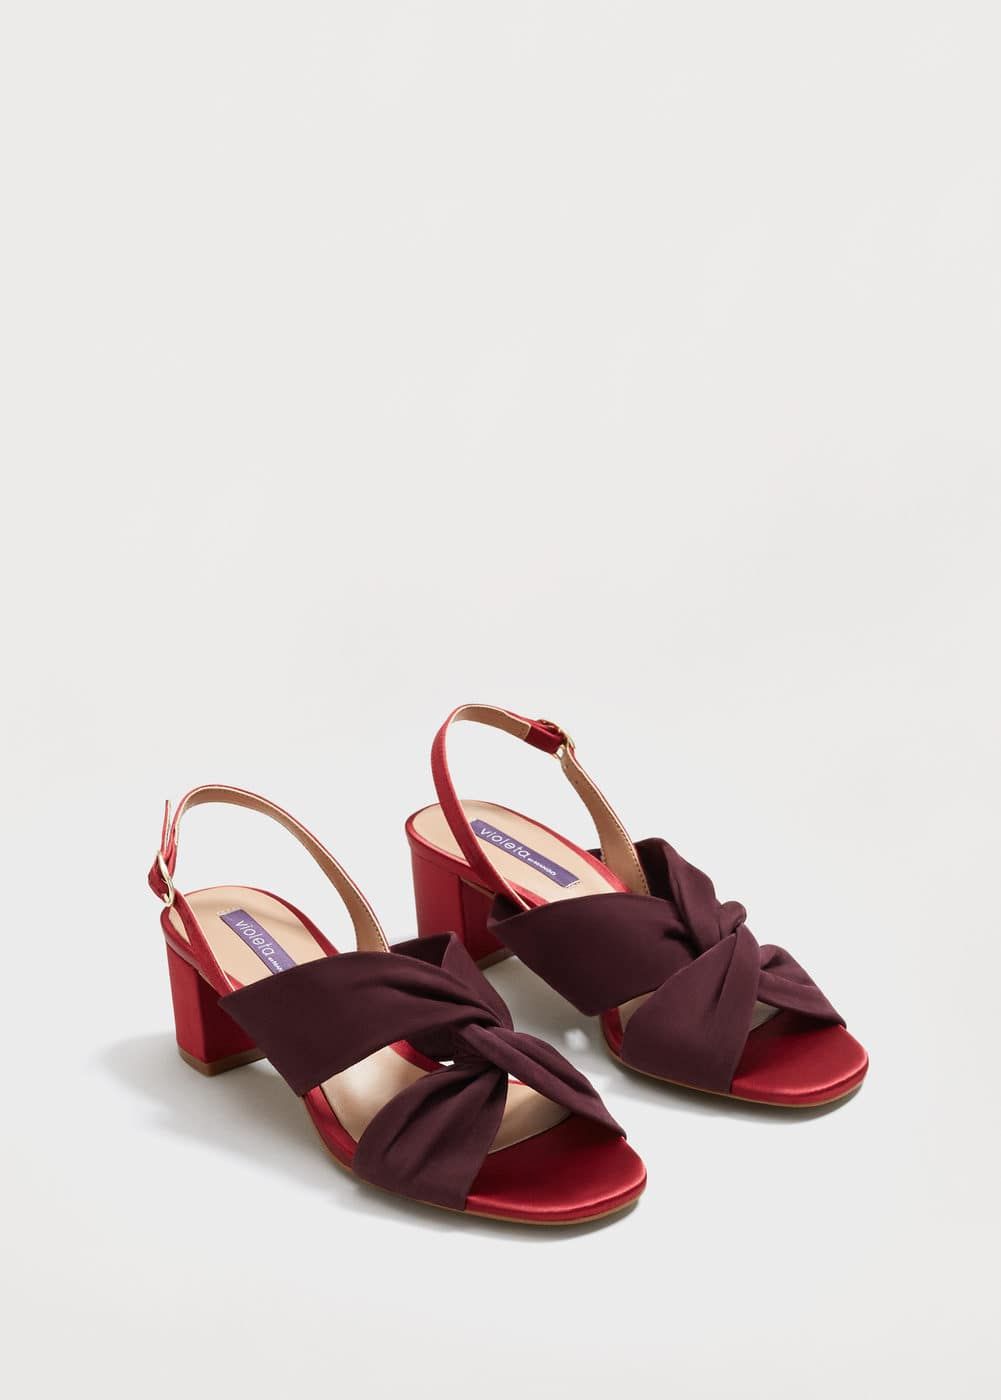 Satin leather sandals | VIOLETA BY MANGO